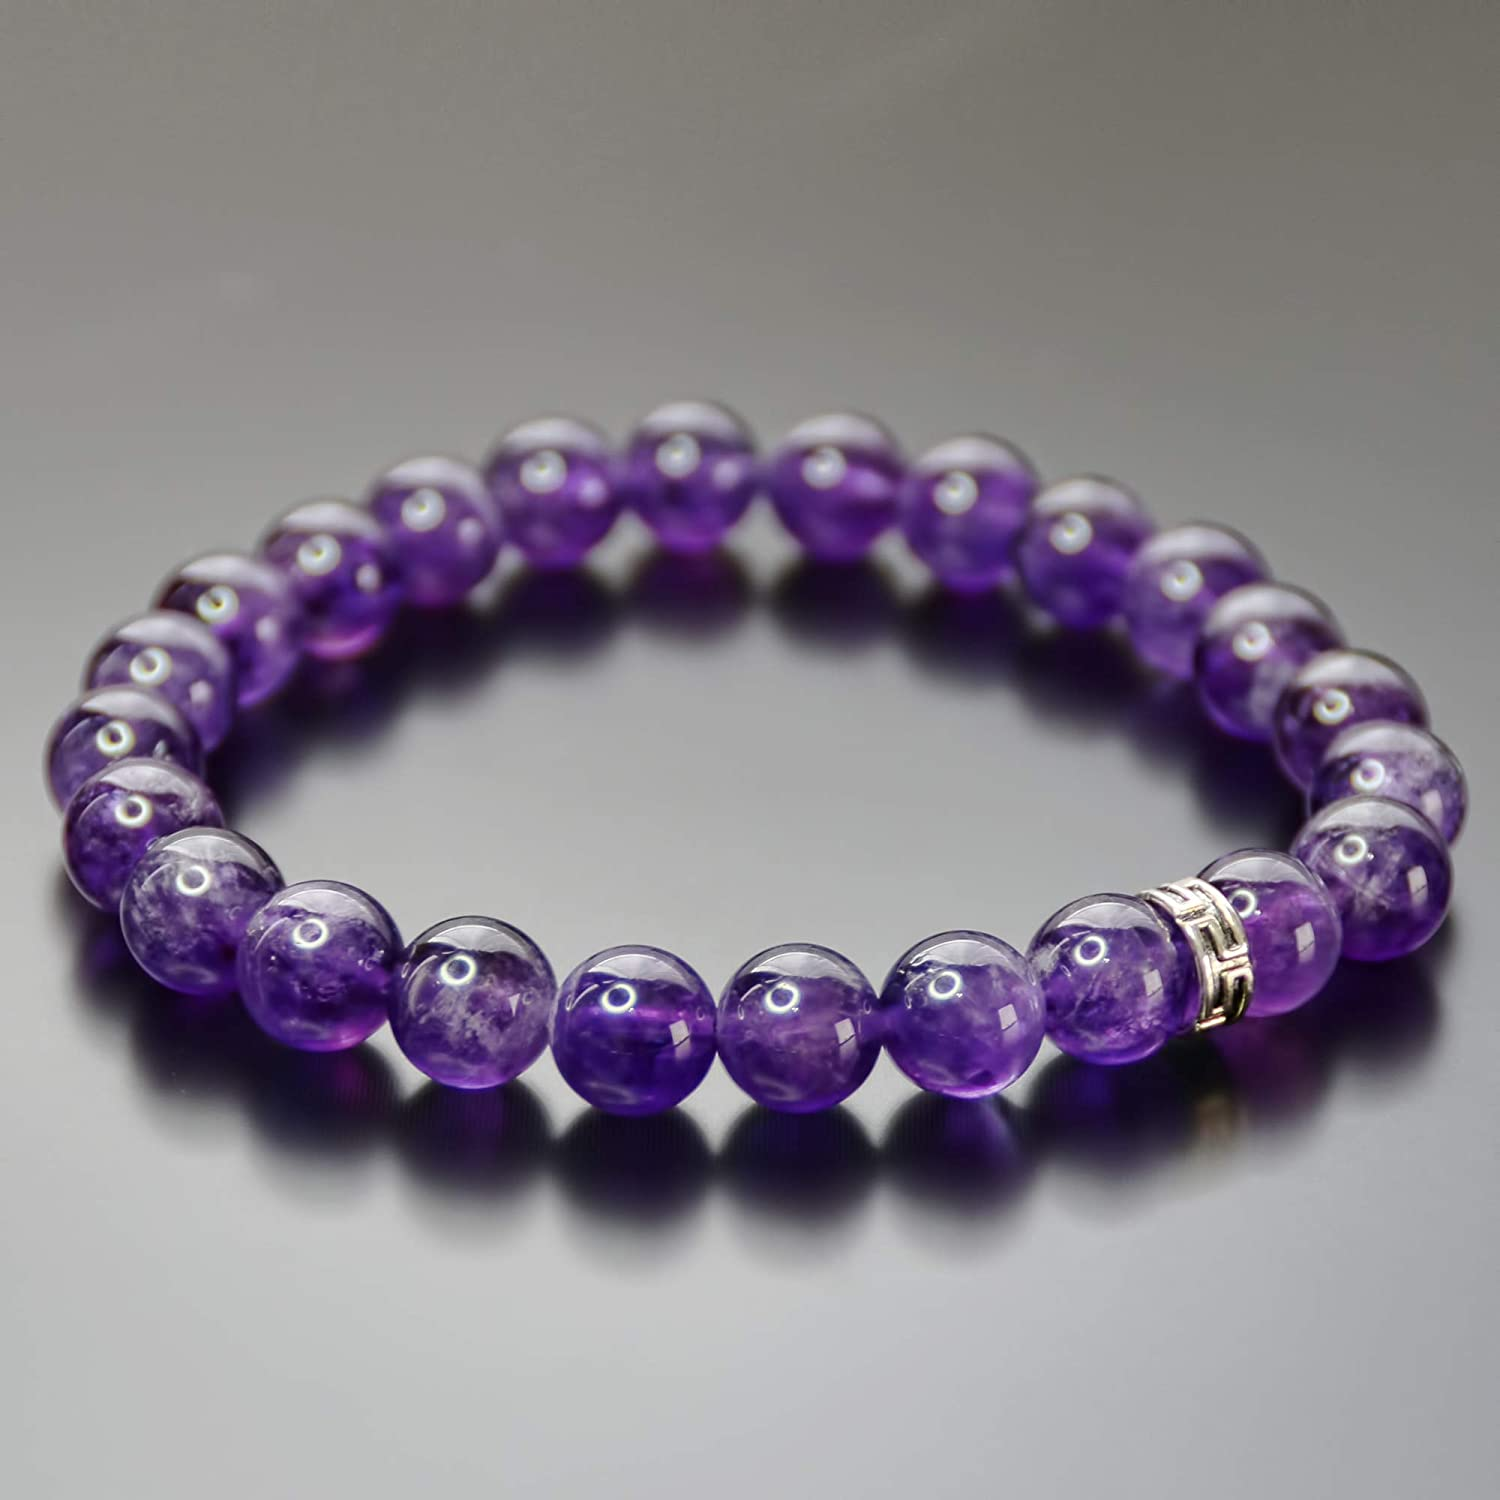 Purple Amethyst Crystal Chakra Bead Stretch Bracelet Jewelry Anxiety Stress Relief Gift for Her Women 8mm